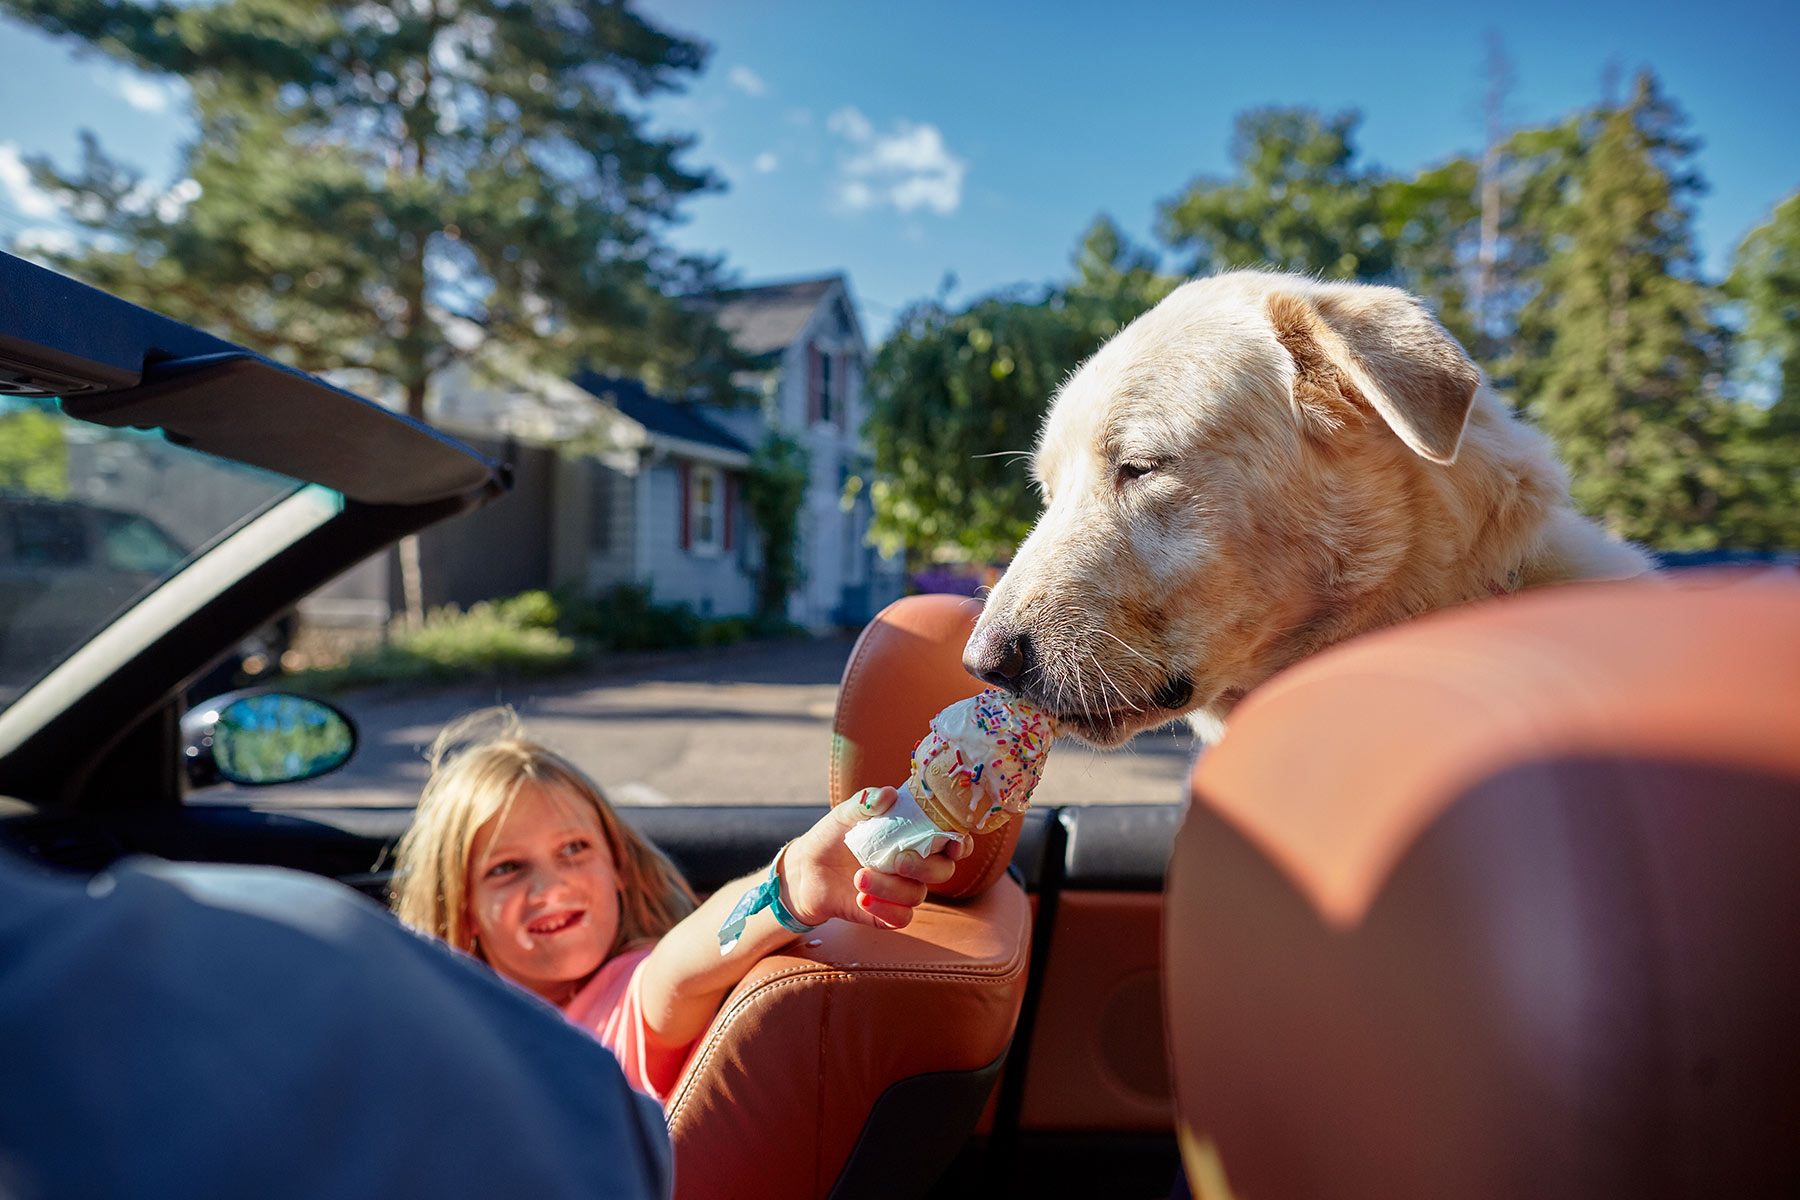 A-young-girl-feeding-ice-cream-to-a-Yellow-Labrador-dog-in-the-back-seat-of-a-car